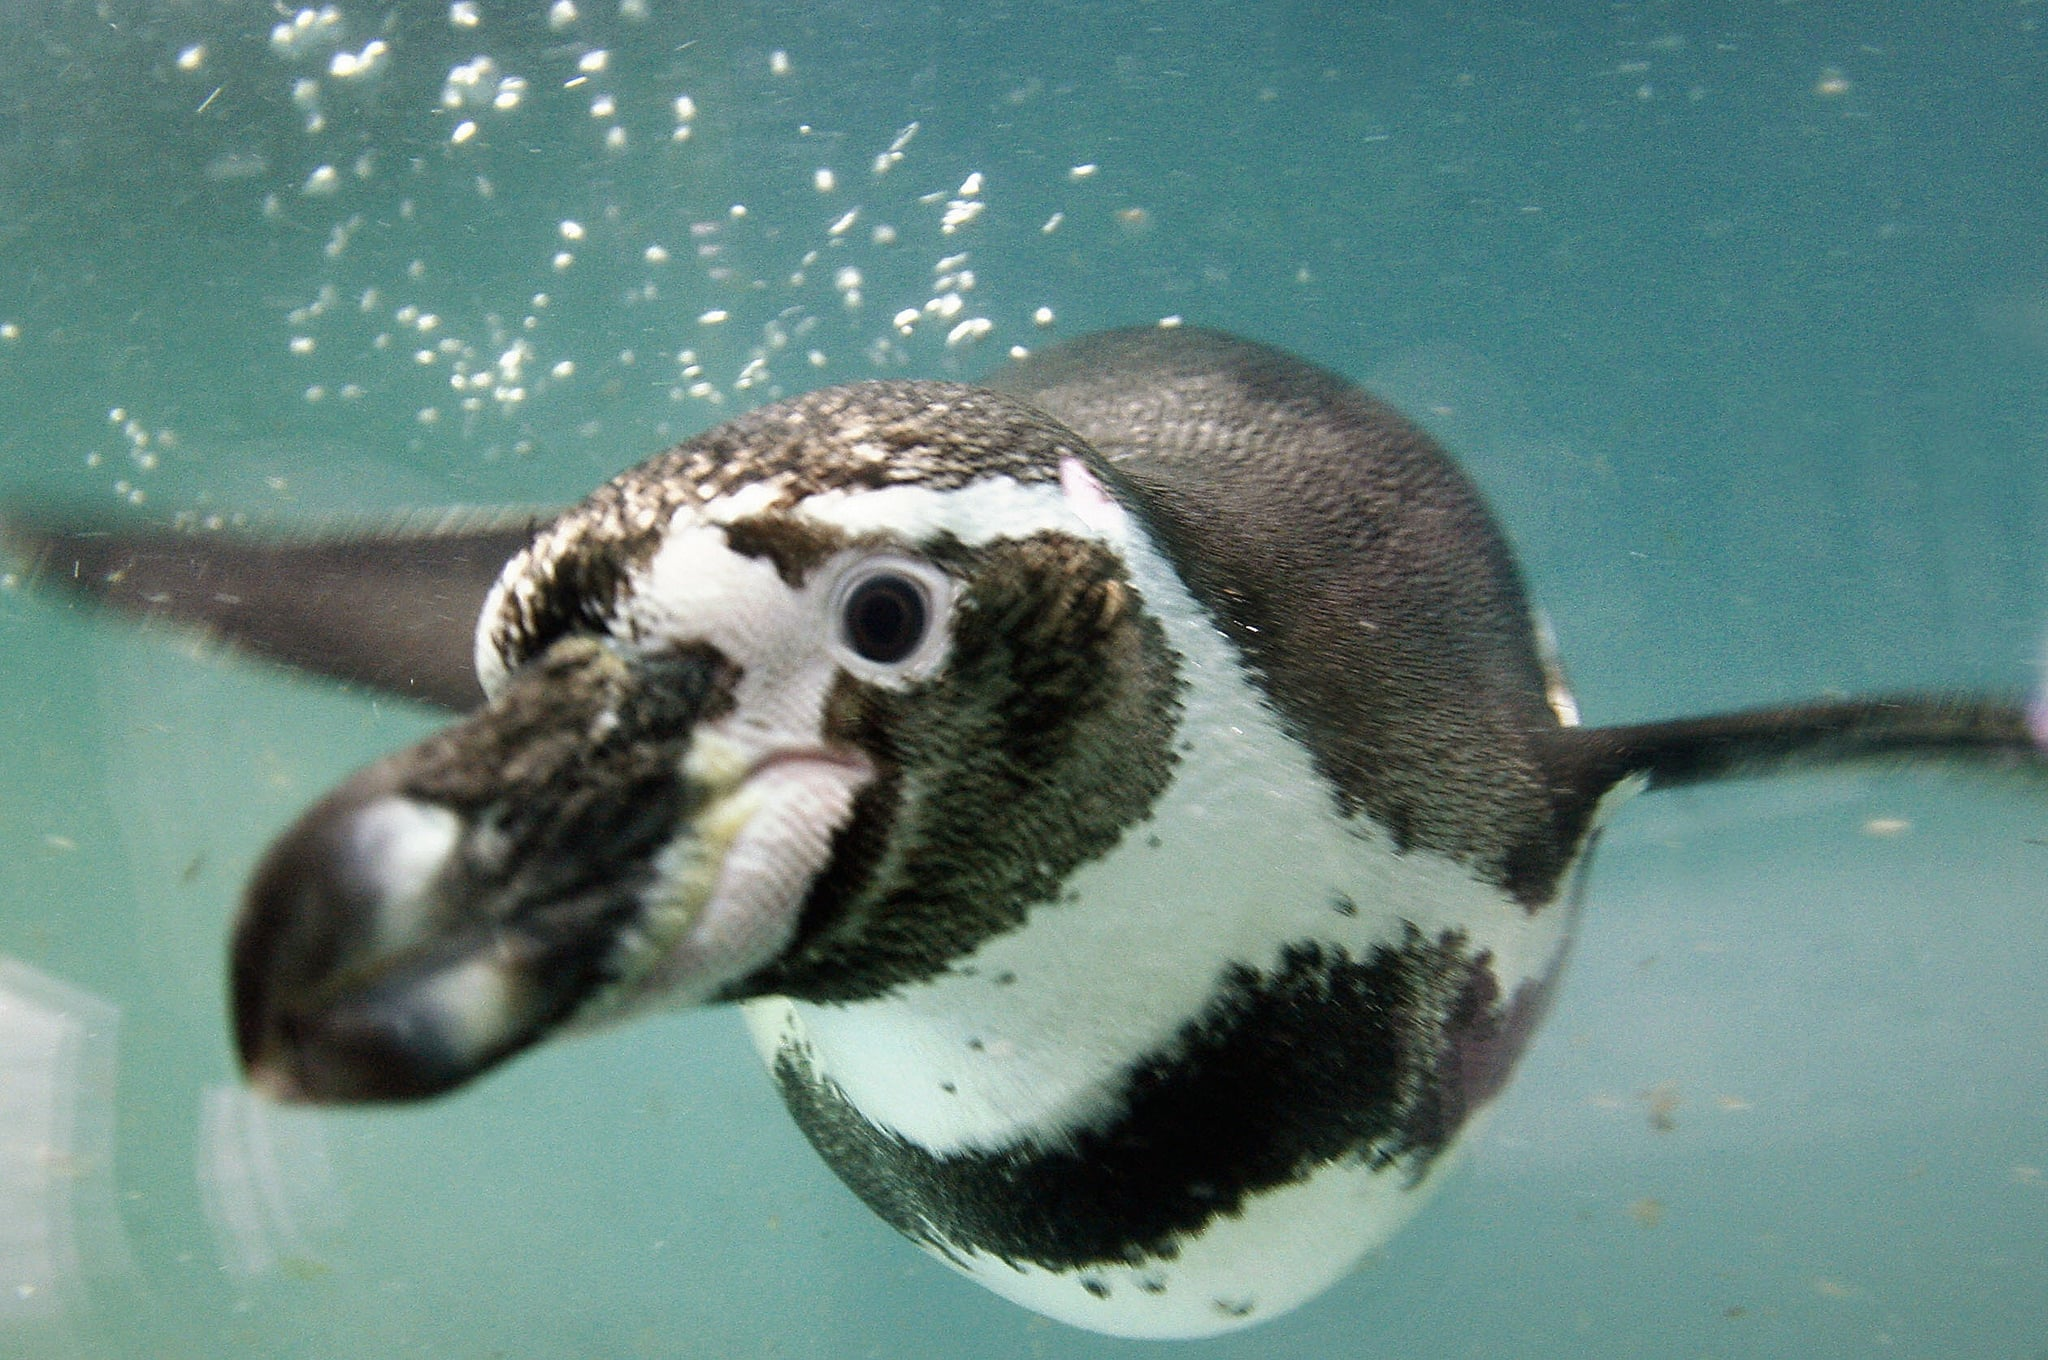 Humboldt penguins, also known as Peruvian penguins, are warm-weather penguin living mostly on rocky mainland shores, near cliffs, or on islands off the coasts of Chile and Peru.